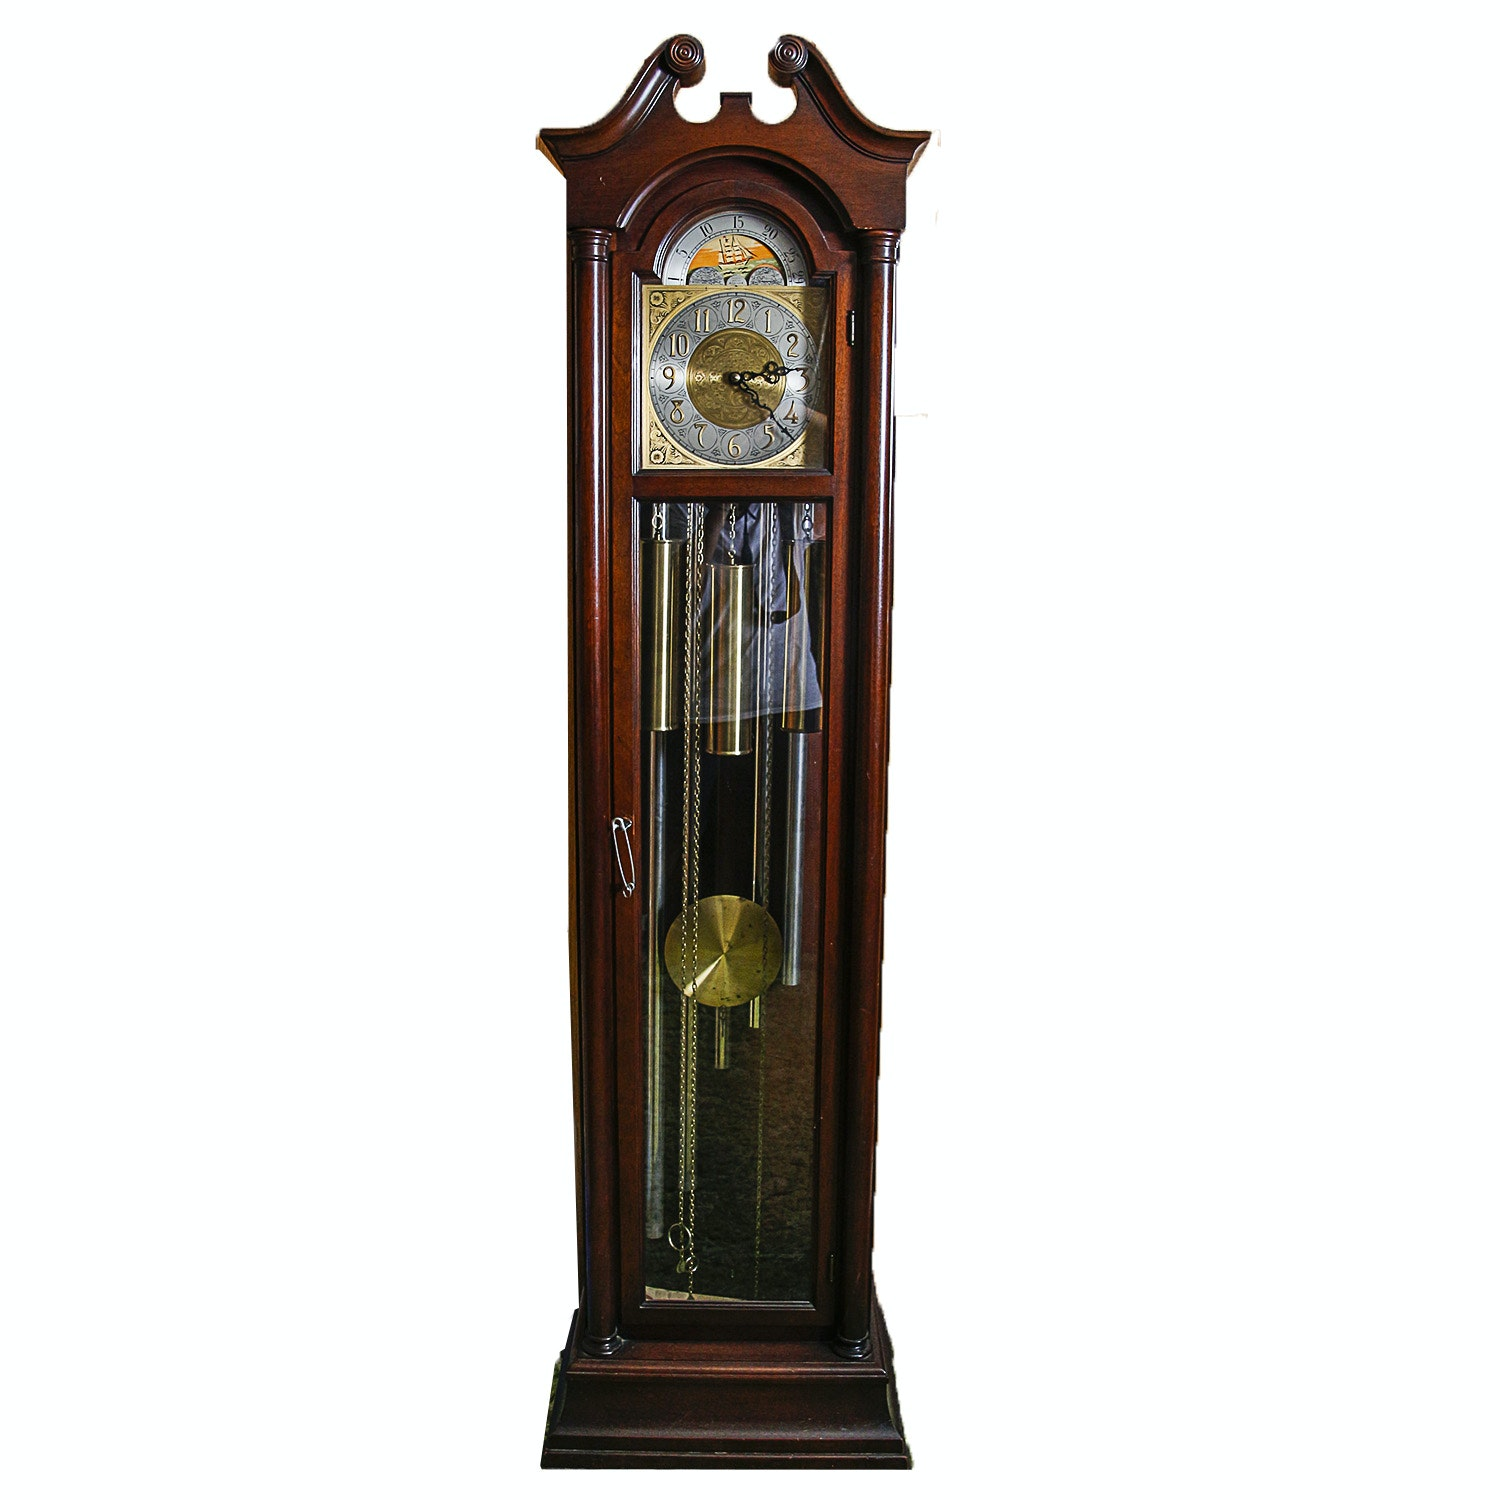 Chippendale Style Grandfather Clock by Colonial Manufacturing Co.